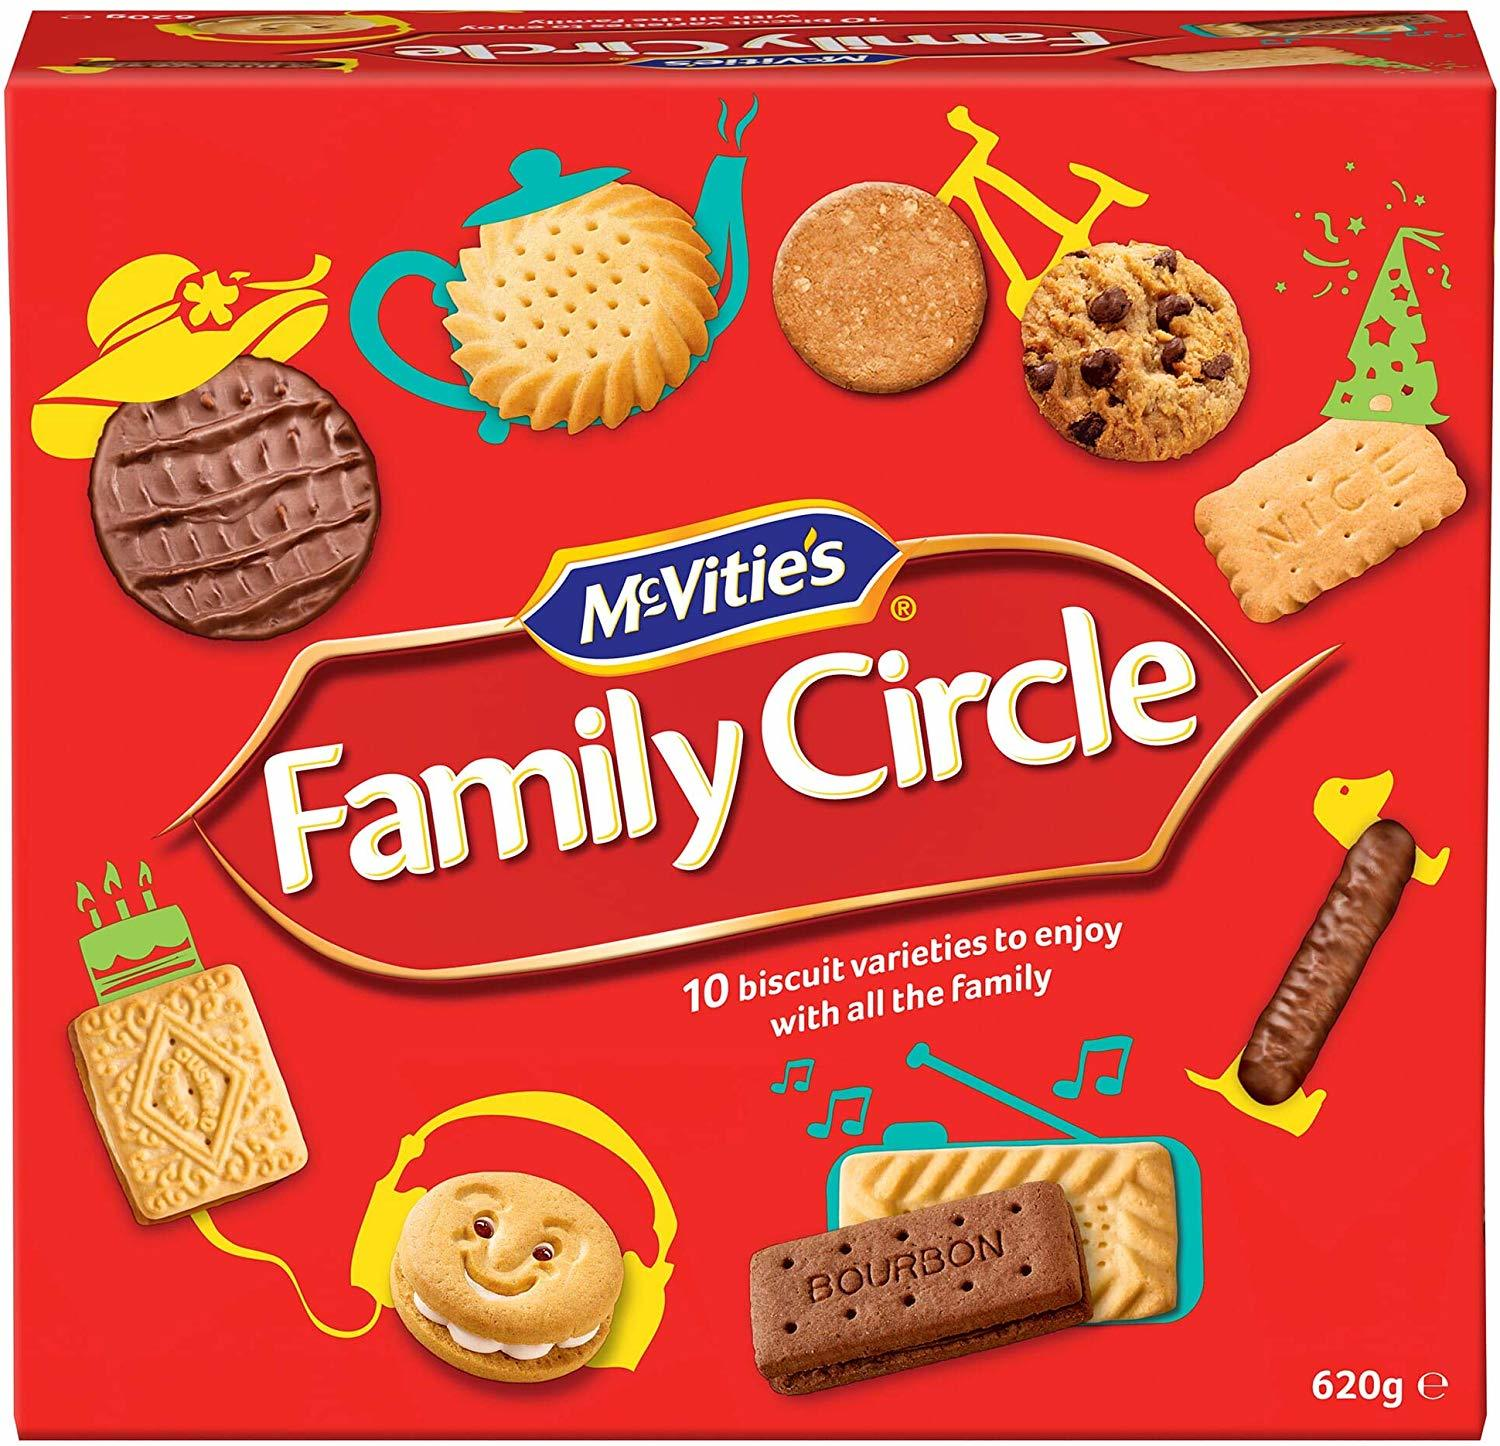 McVitie's Family Circle Biscuits (670g) image